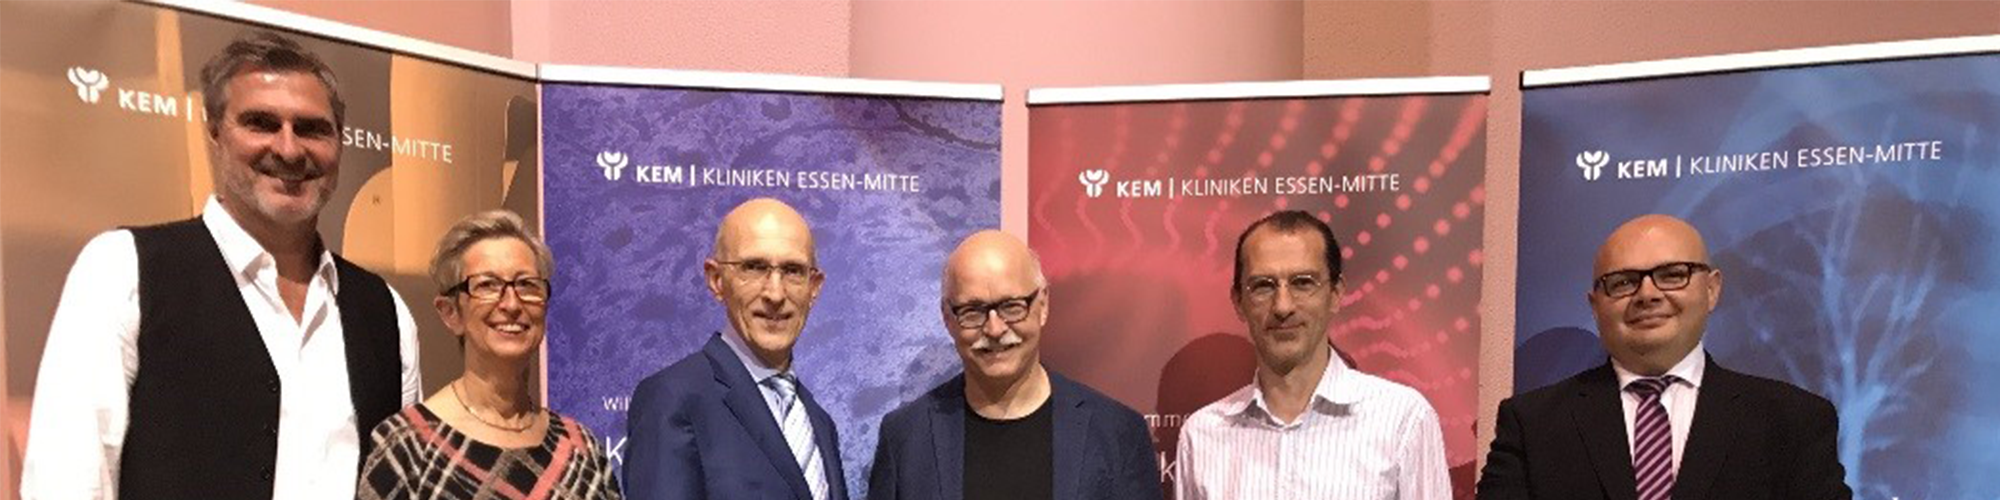 10. Essener Krebstag